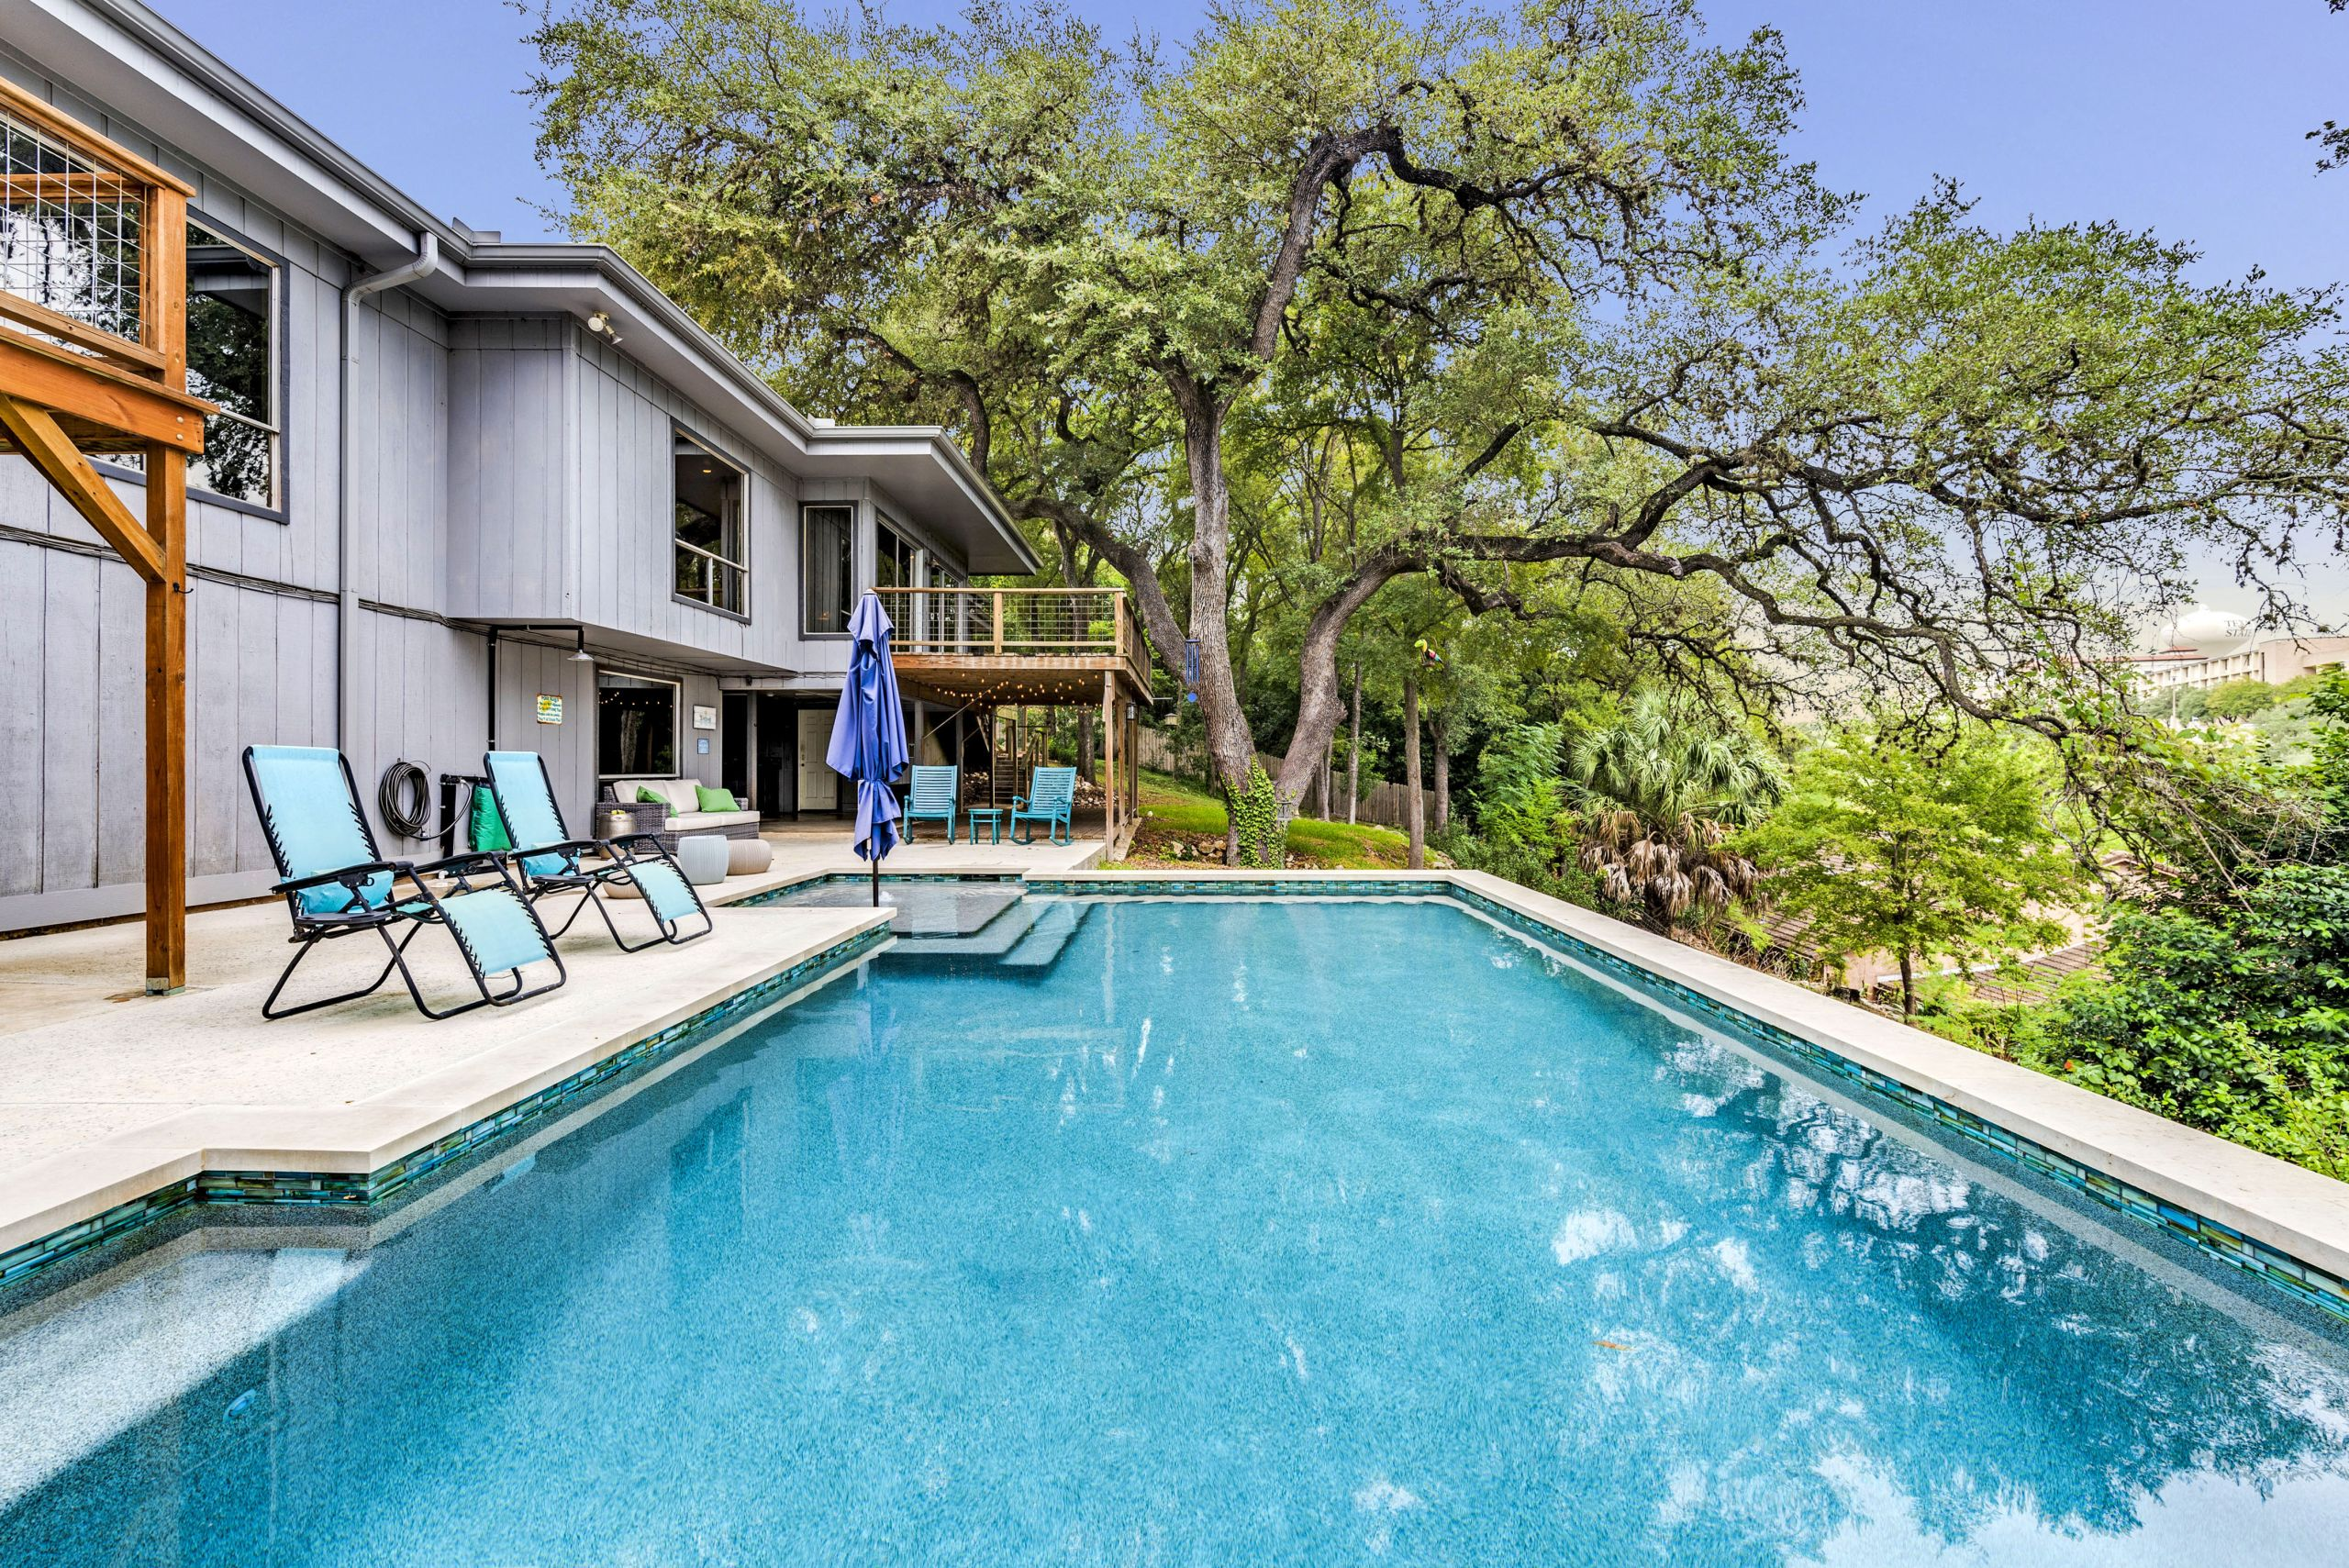 Looking For A Home With A Pool?